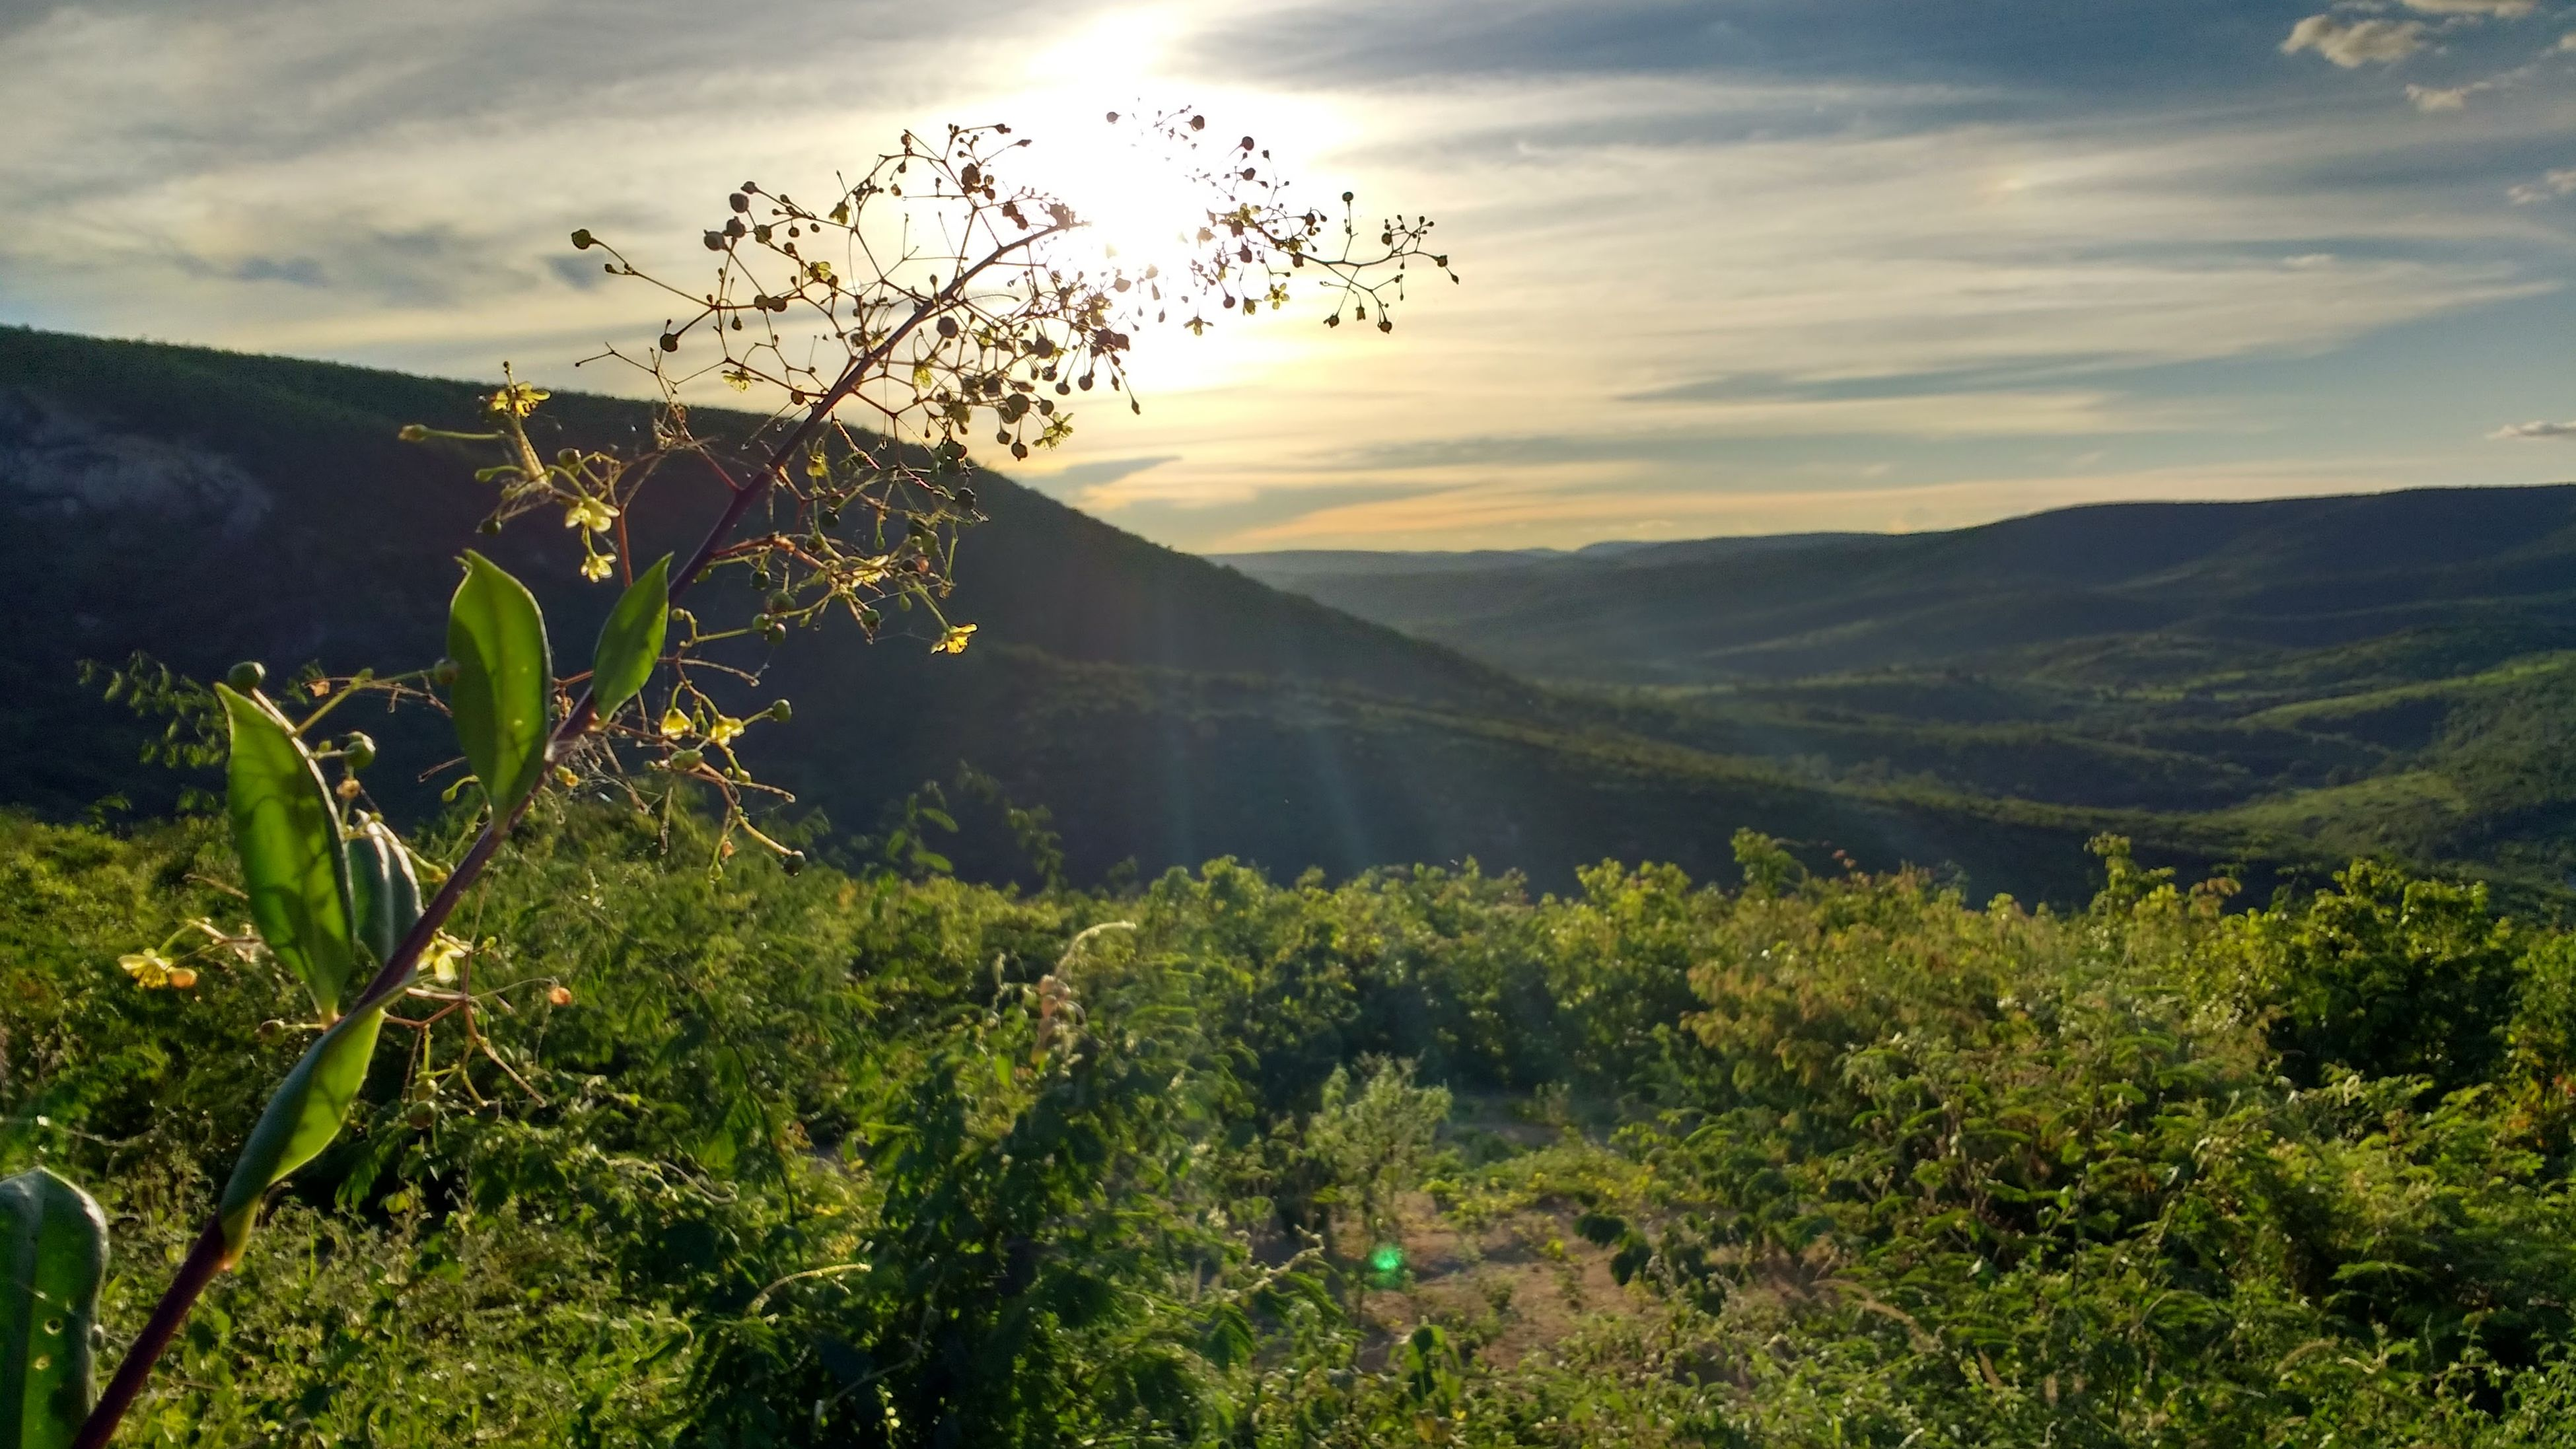 nature, mountain, beauty in nature, scenics, tranquility, tranquil scene, growth, no people, landscape, sky, plant, outdoors, day, sunset, tree